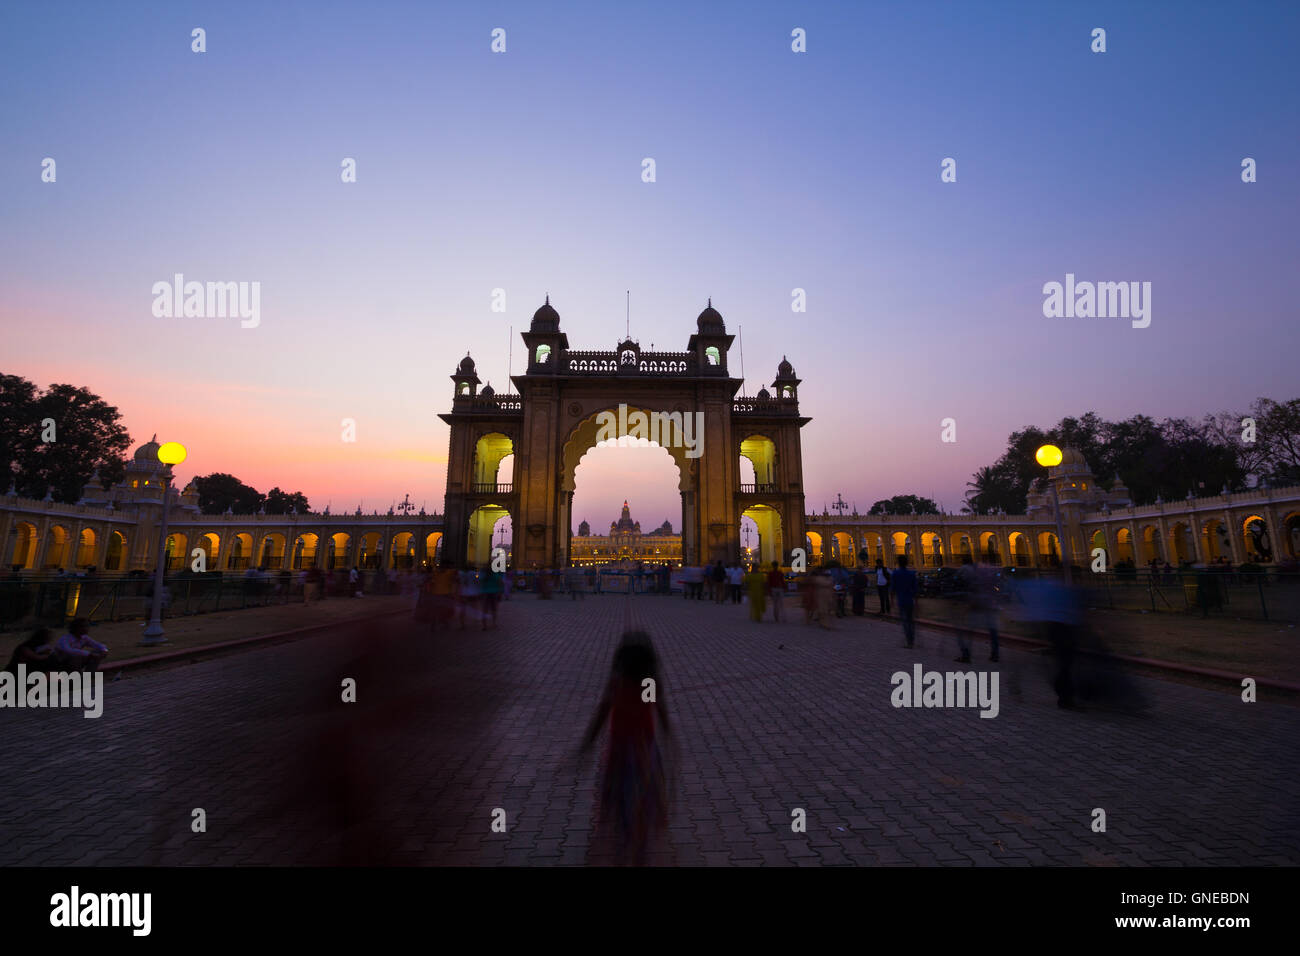 Mysore Palace, one of the most famous tourist attractions in India. Mysore is commonly described as the City of - Stock Image